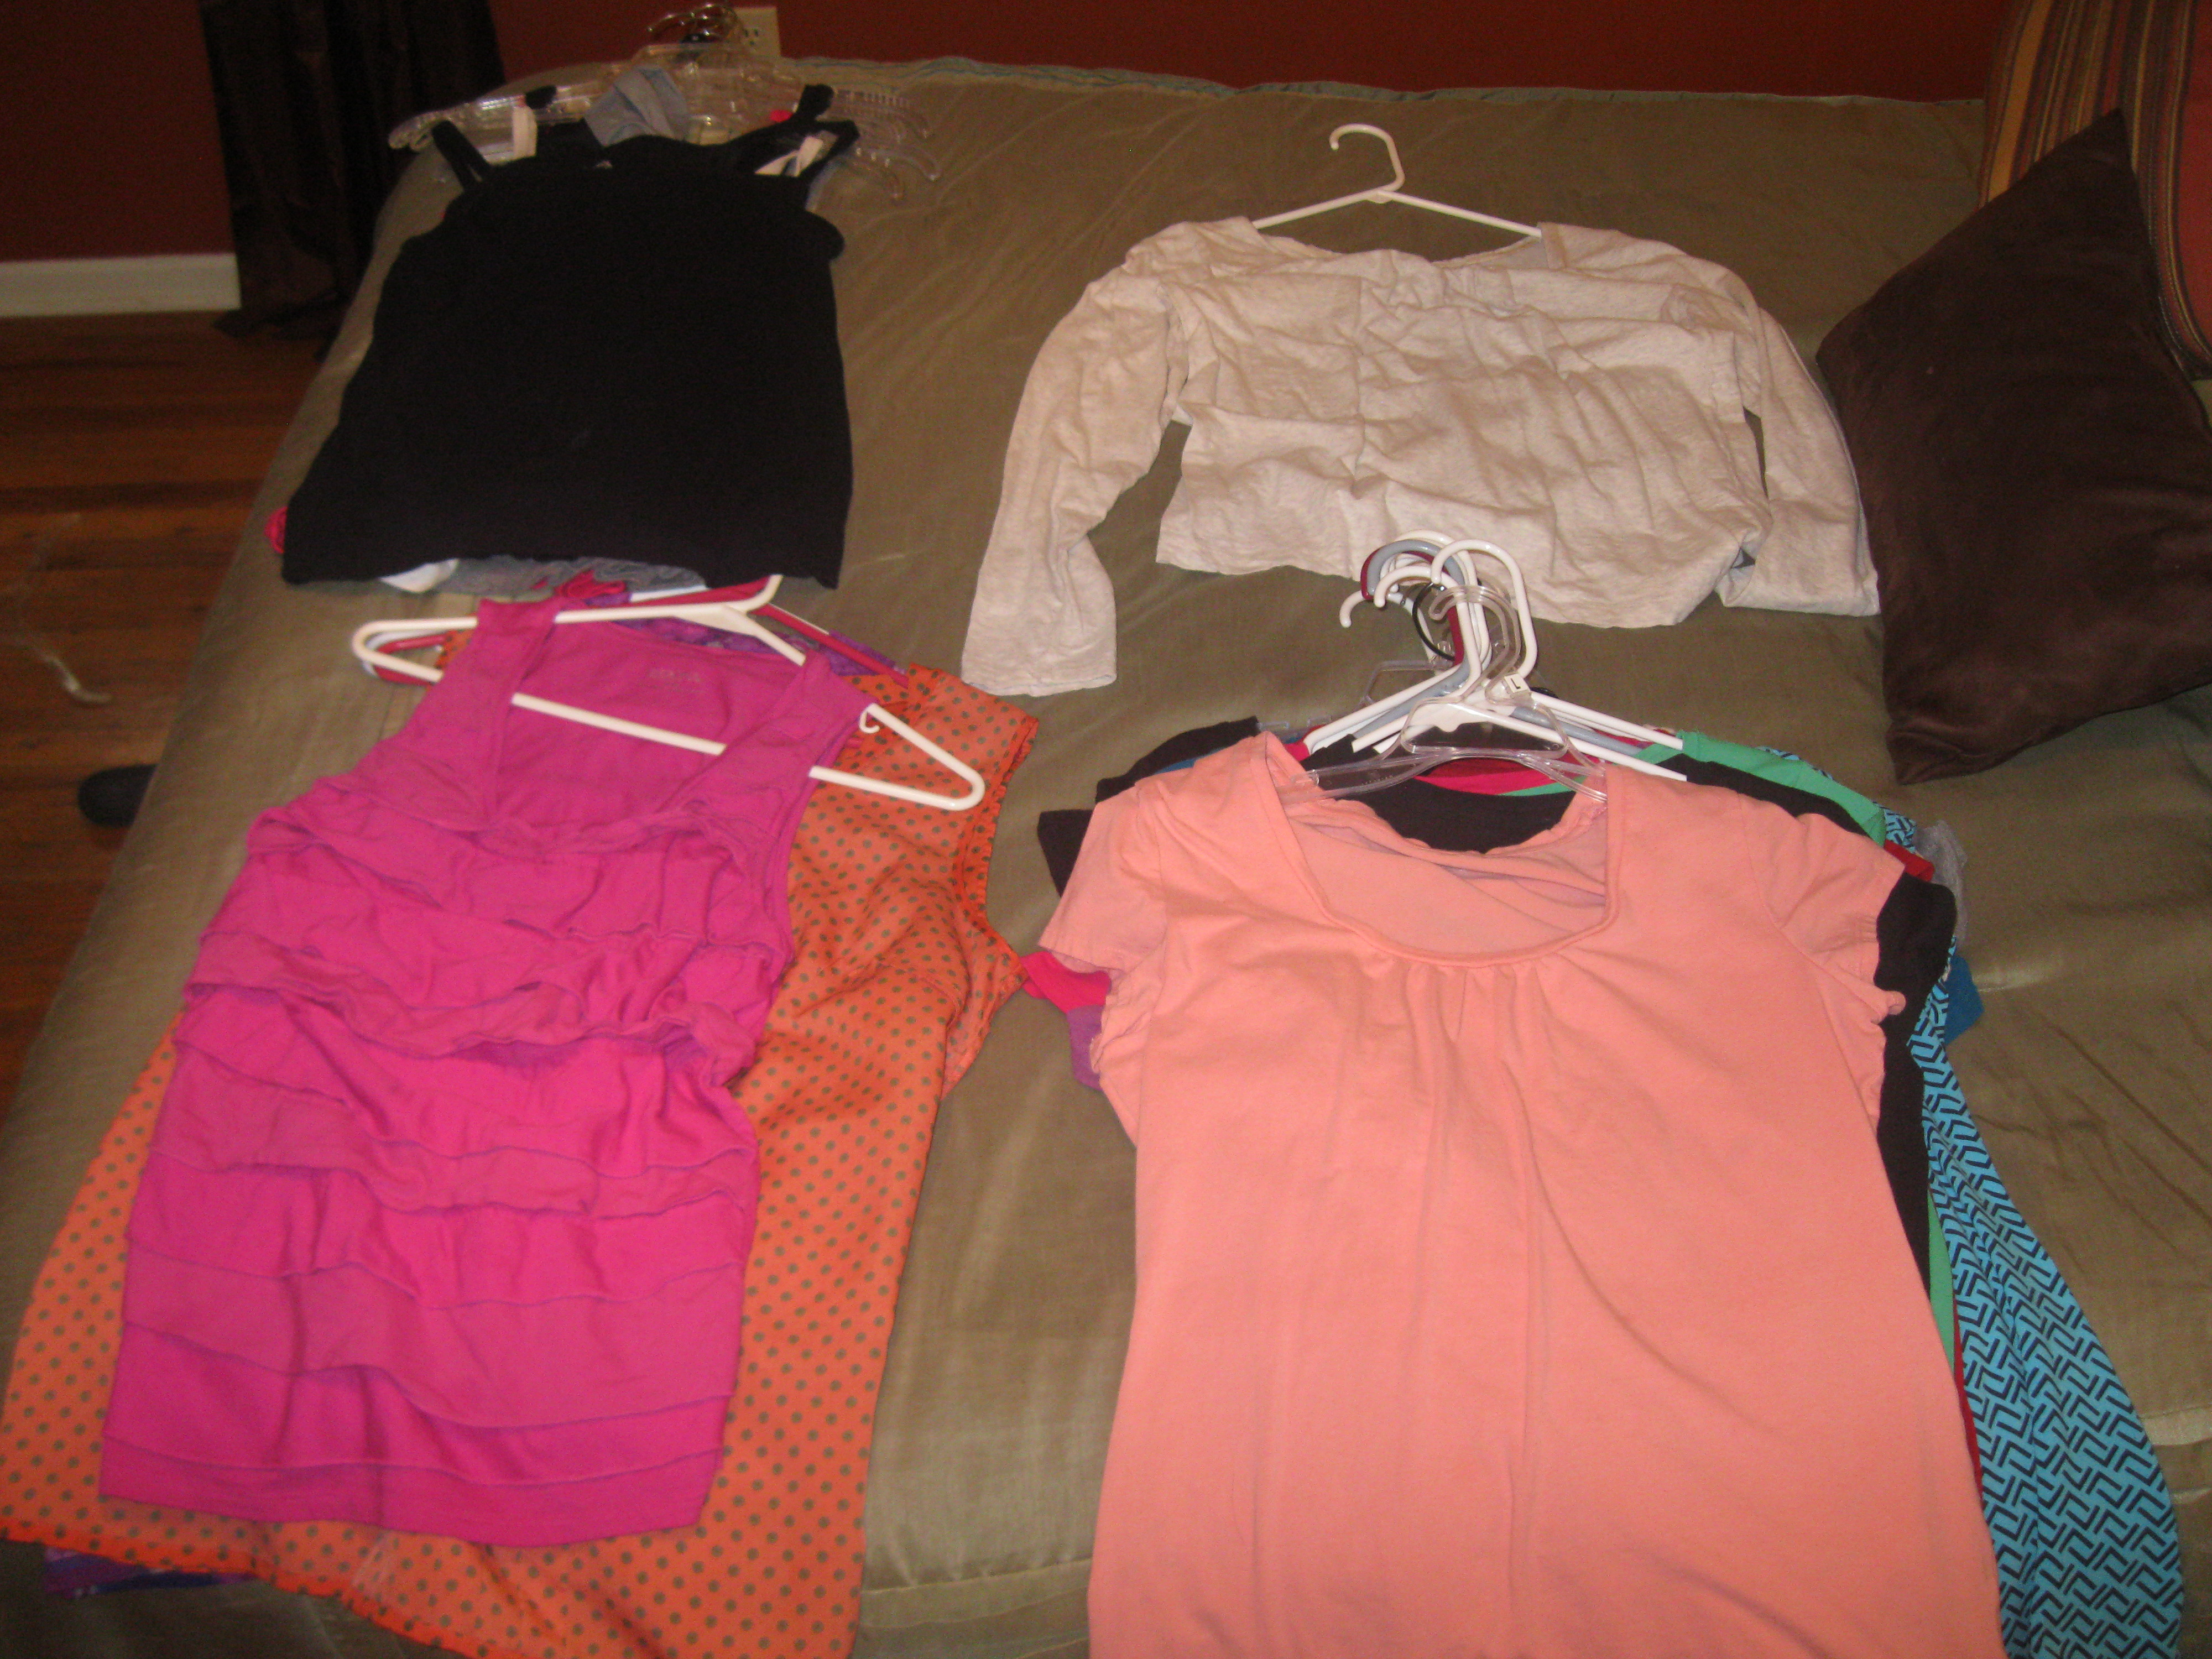 T-Shirts, Tanks, and Camisoles {Day 8}